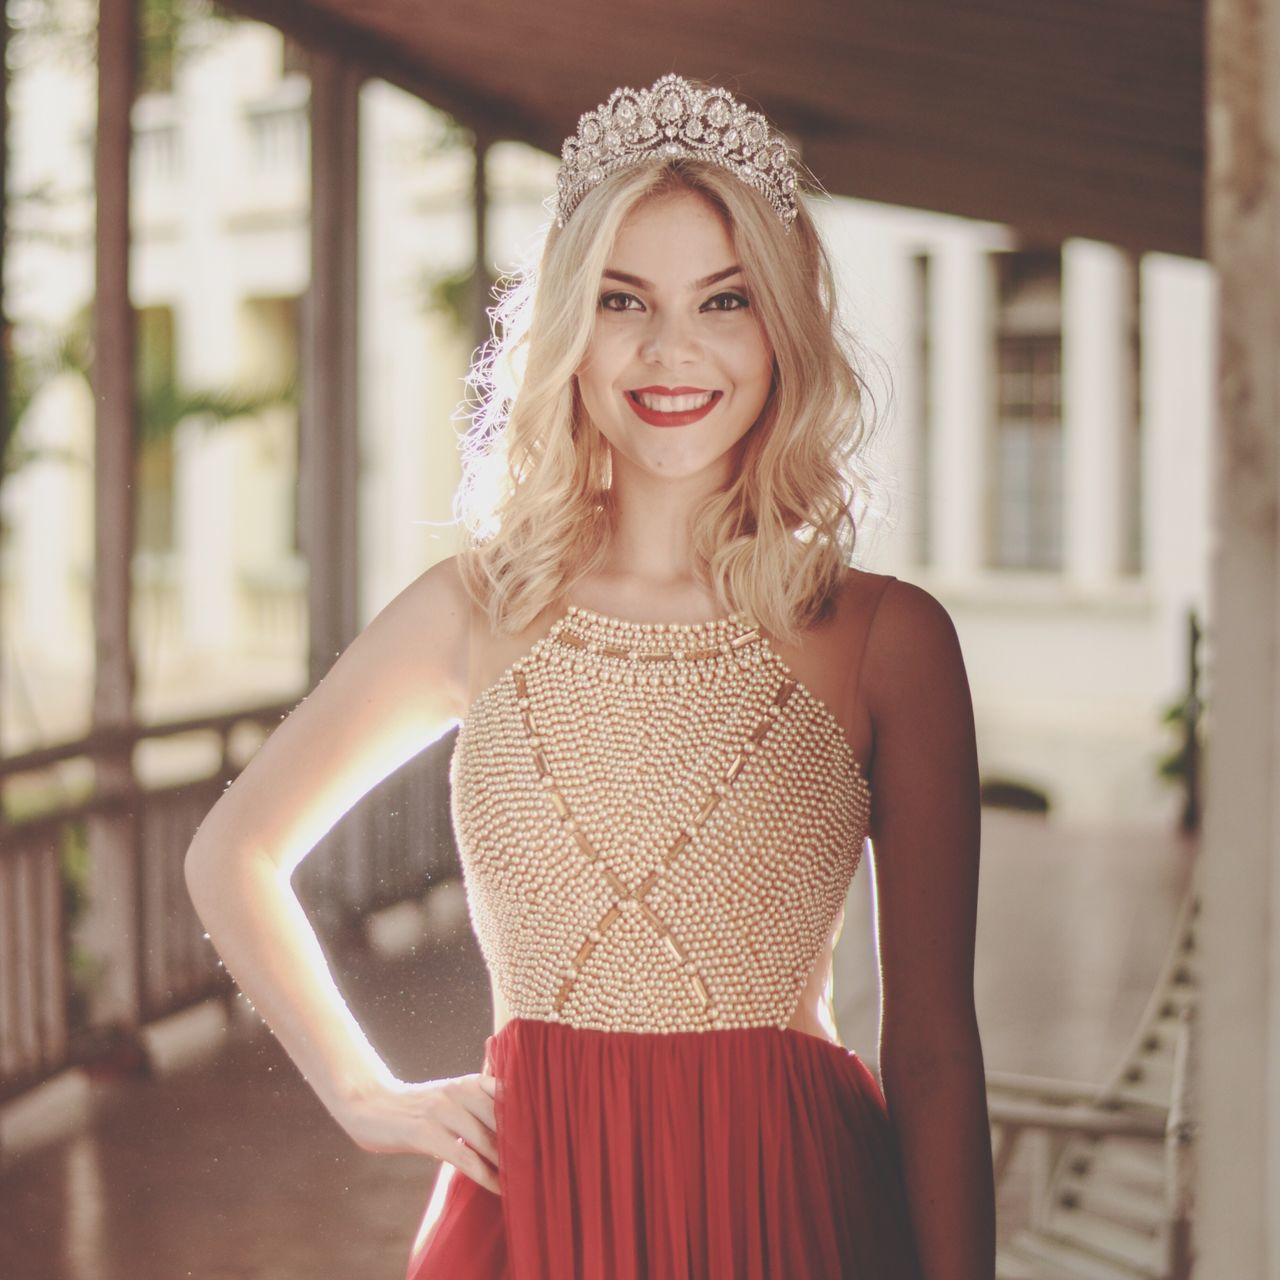 dress, young adult, beautiful woman, looking at camera, front view, portrait, one person, young women, real people, focus on foreground, smiling, happiness, fashion, blond hair, beauty, glamour, standing, beautiful people, fashion model, day, evening gown, outdoors, one young woman only, bride, people